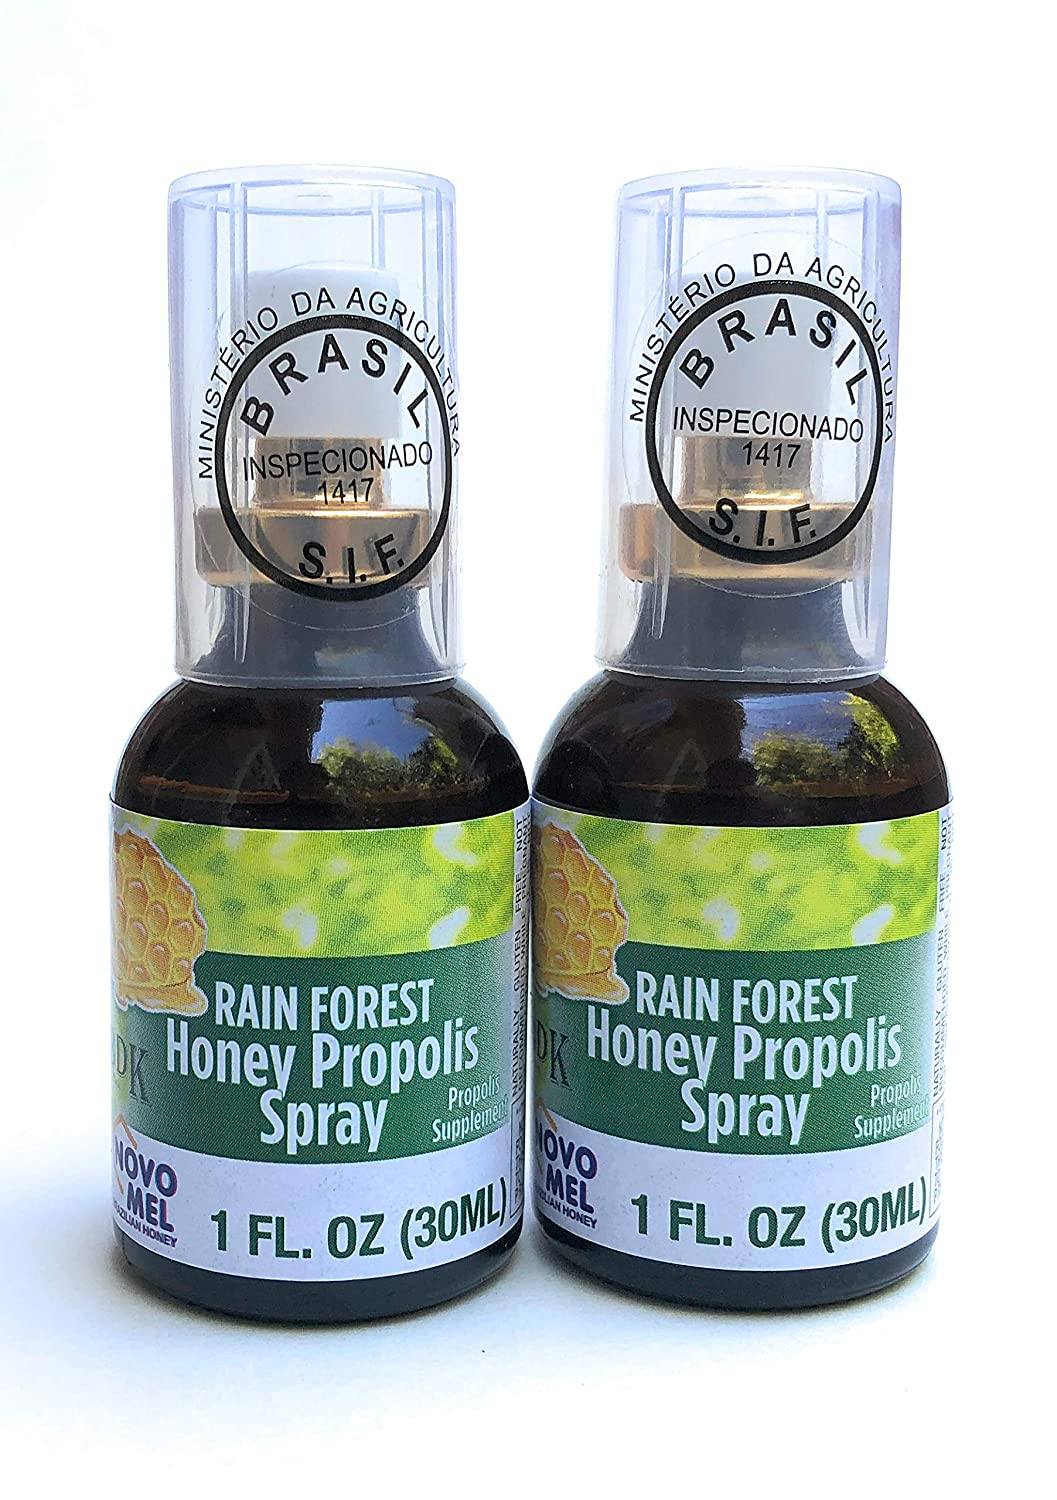 Brazilian Green Bee Propolis and Rain Forest Honey Oral Spray, 2 bottle pack